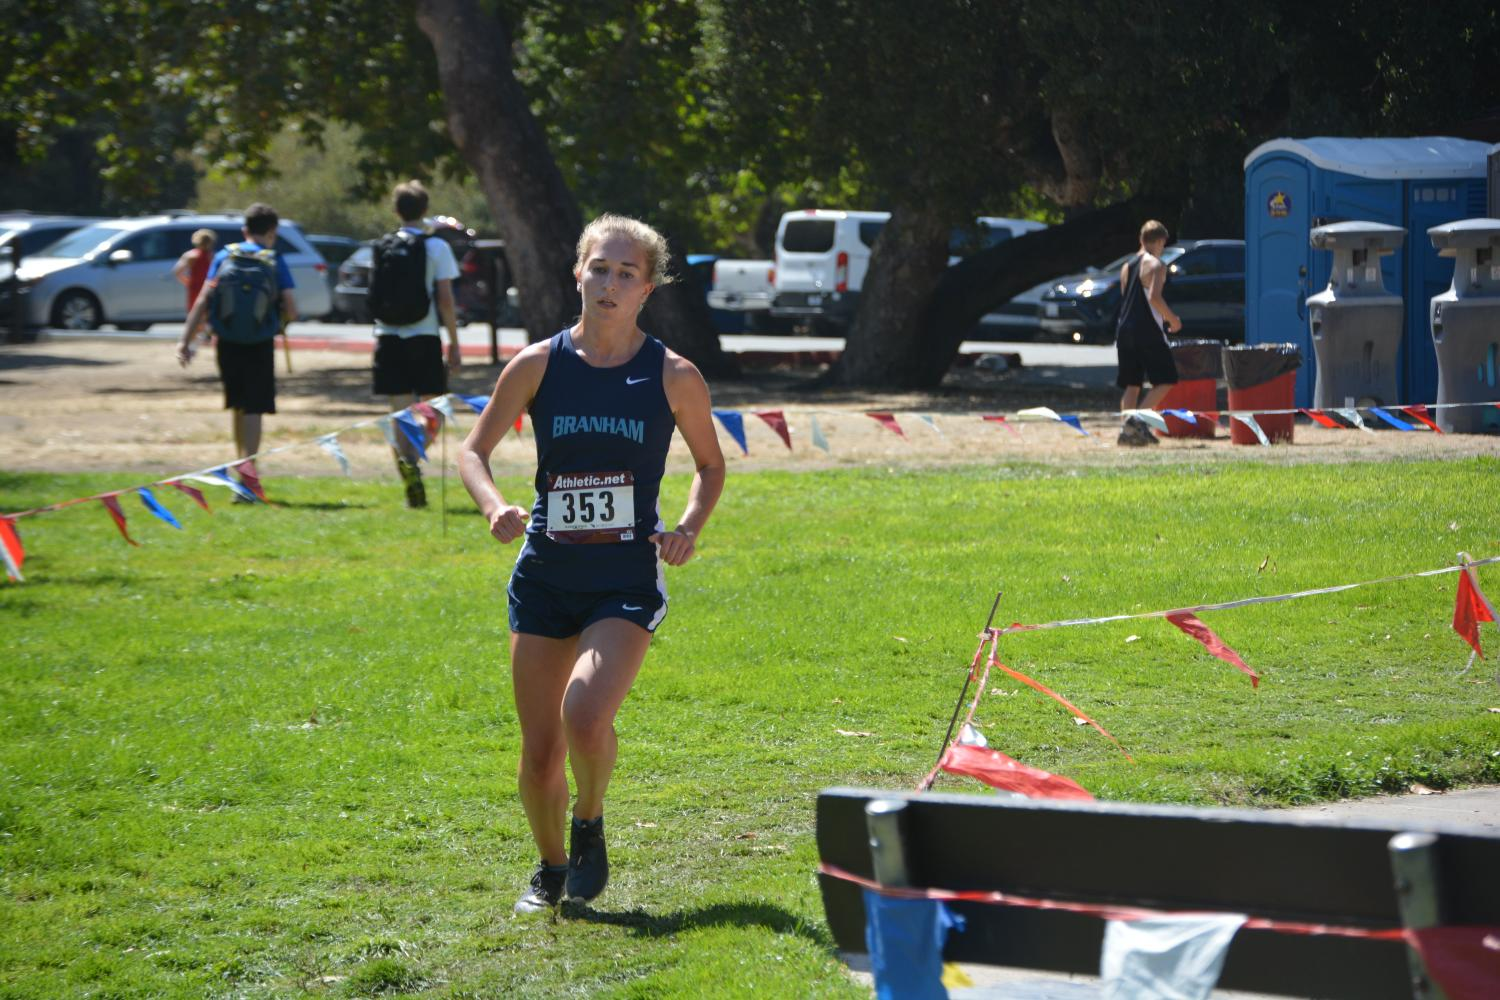 Successful invitational outing caps mixed week for cross country